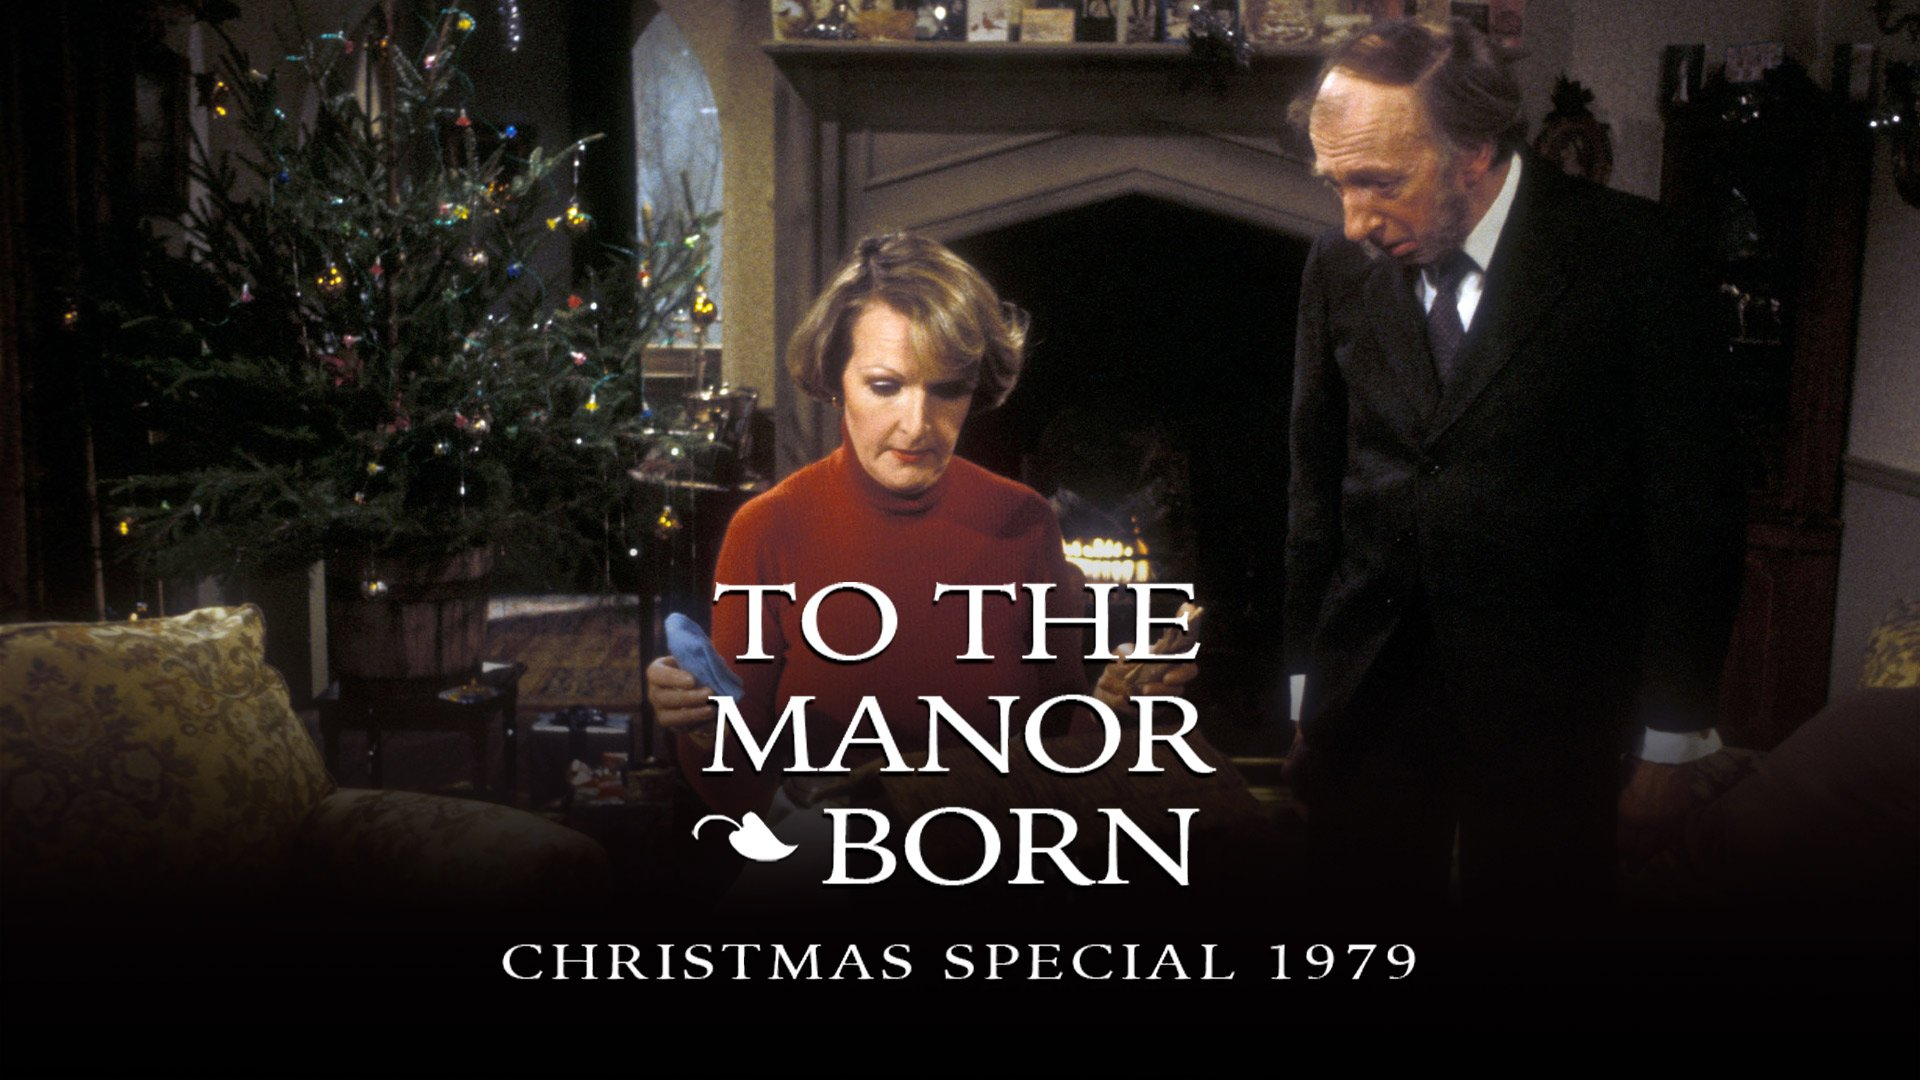 To the Manor Born Christmas Special 1979 on BritBox UK